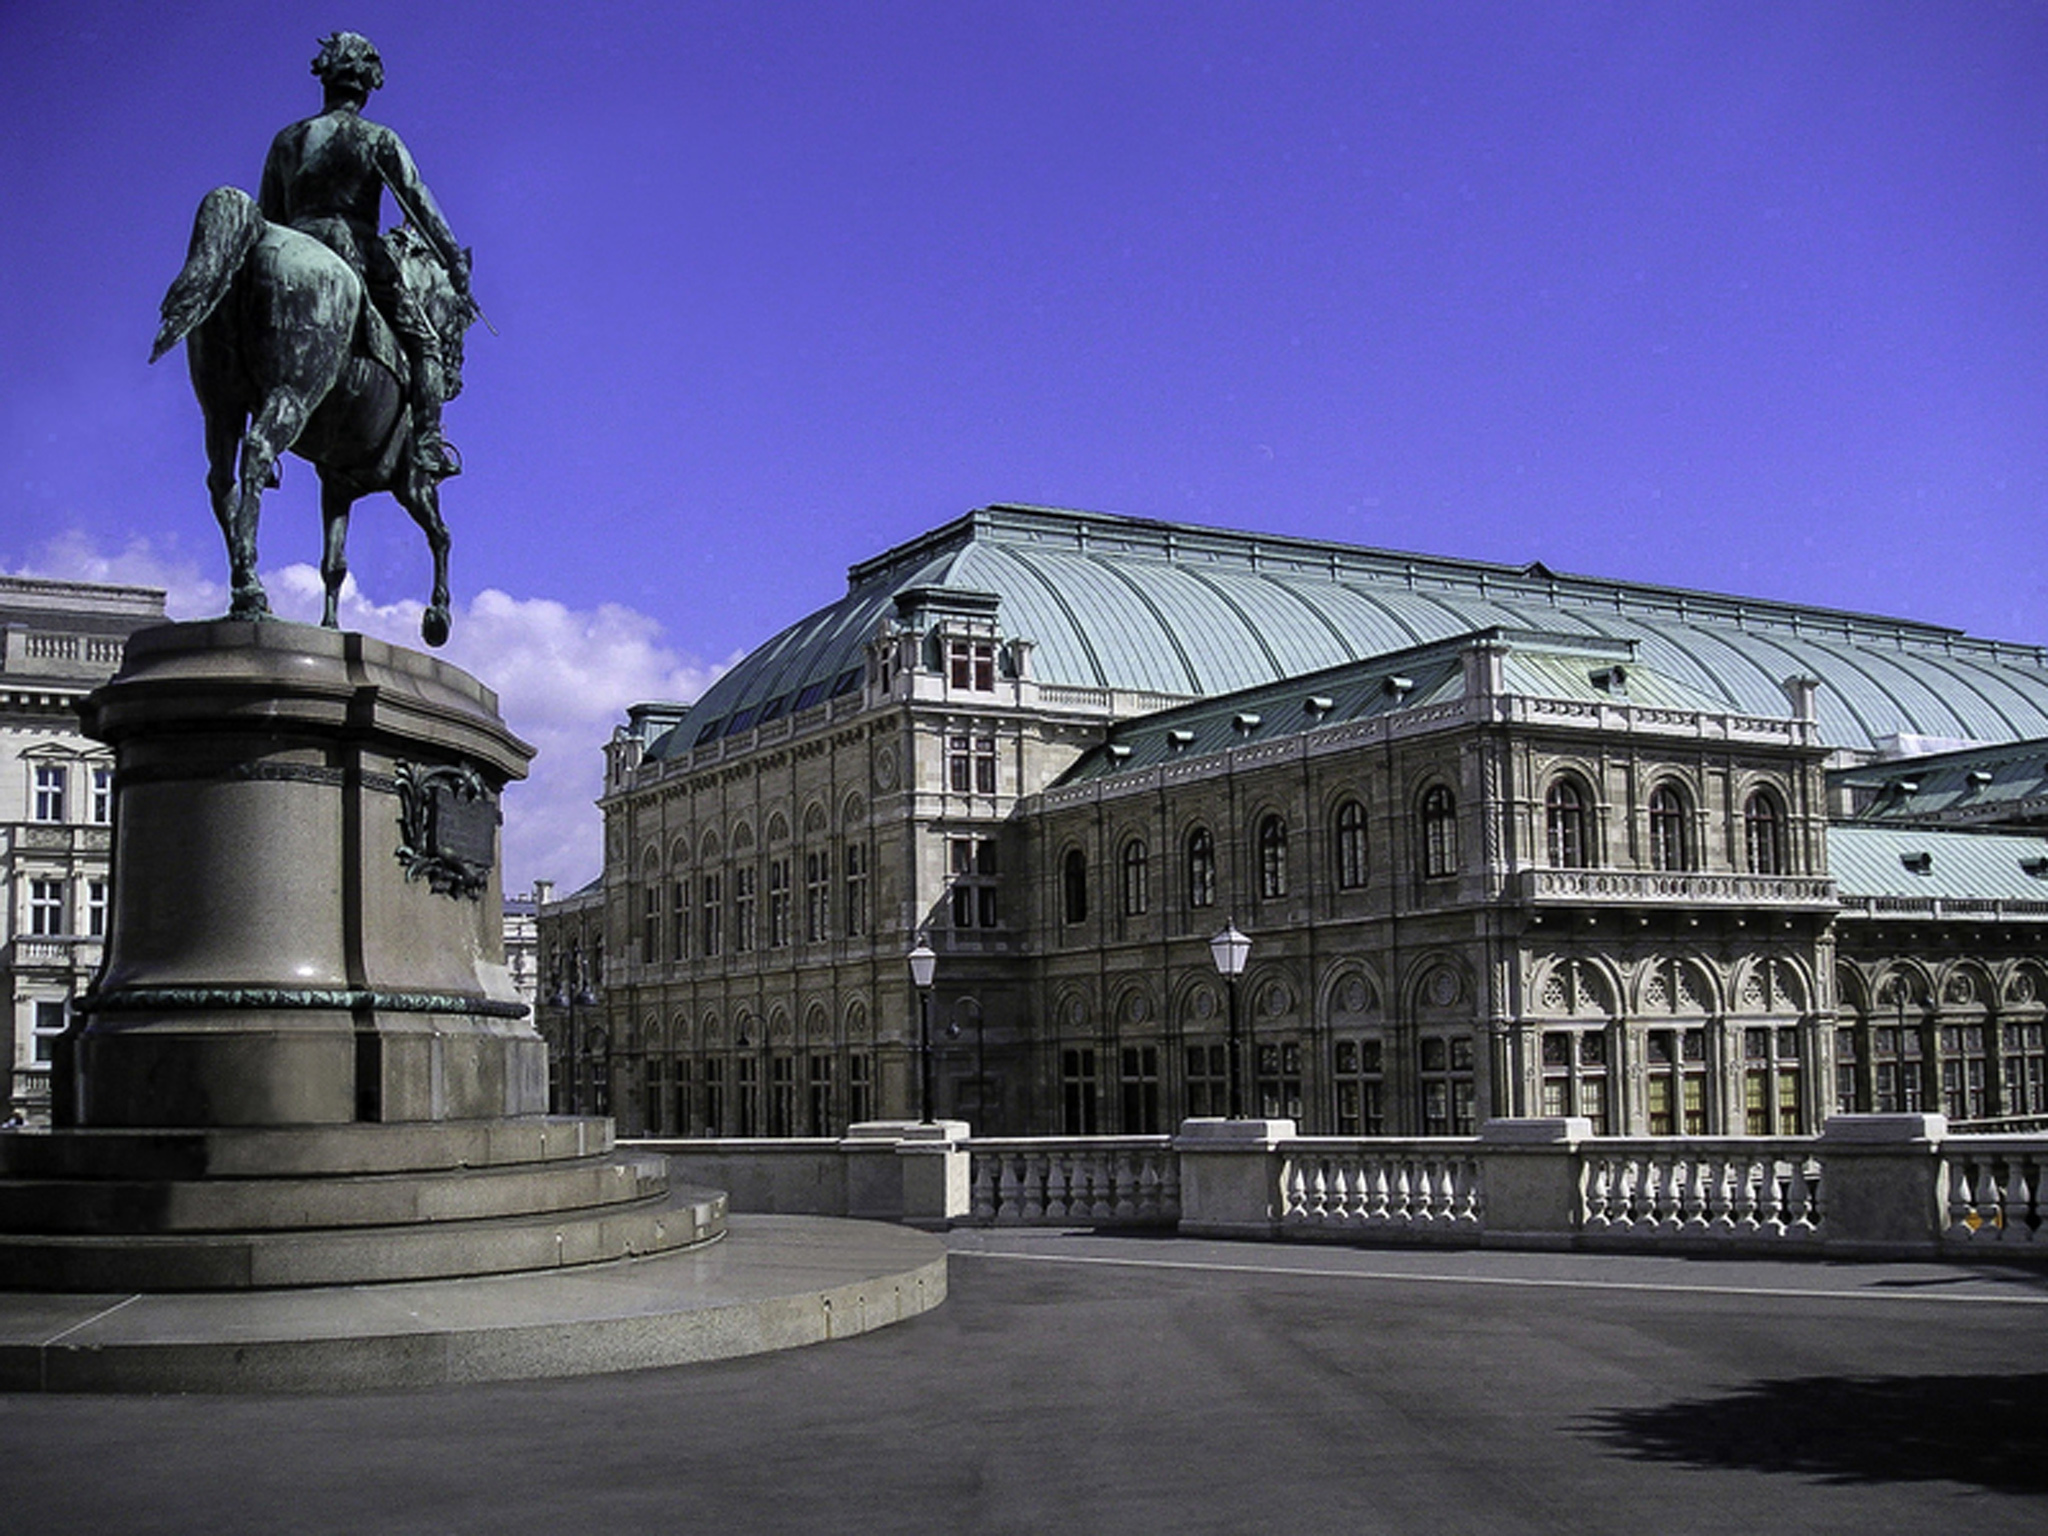 The Albertina in Vienna